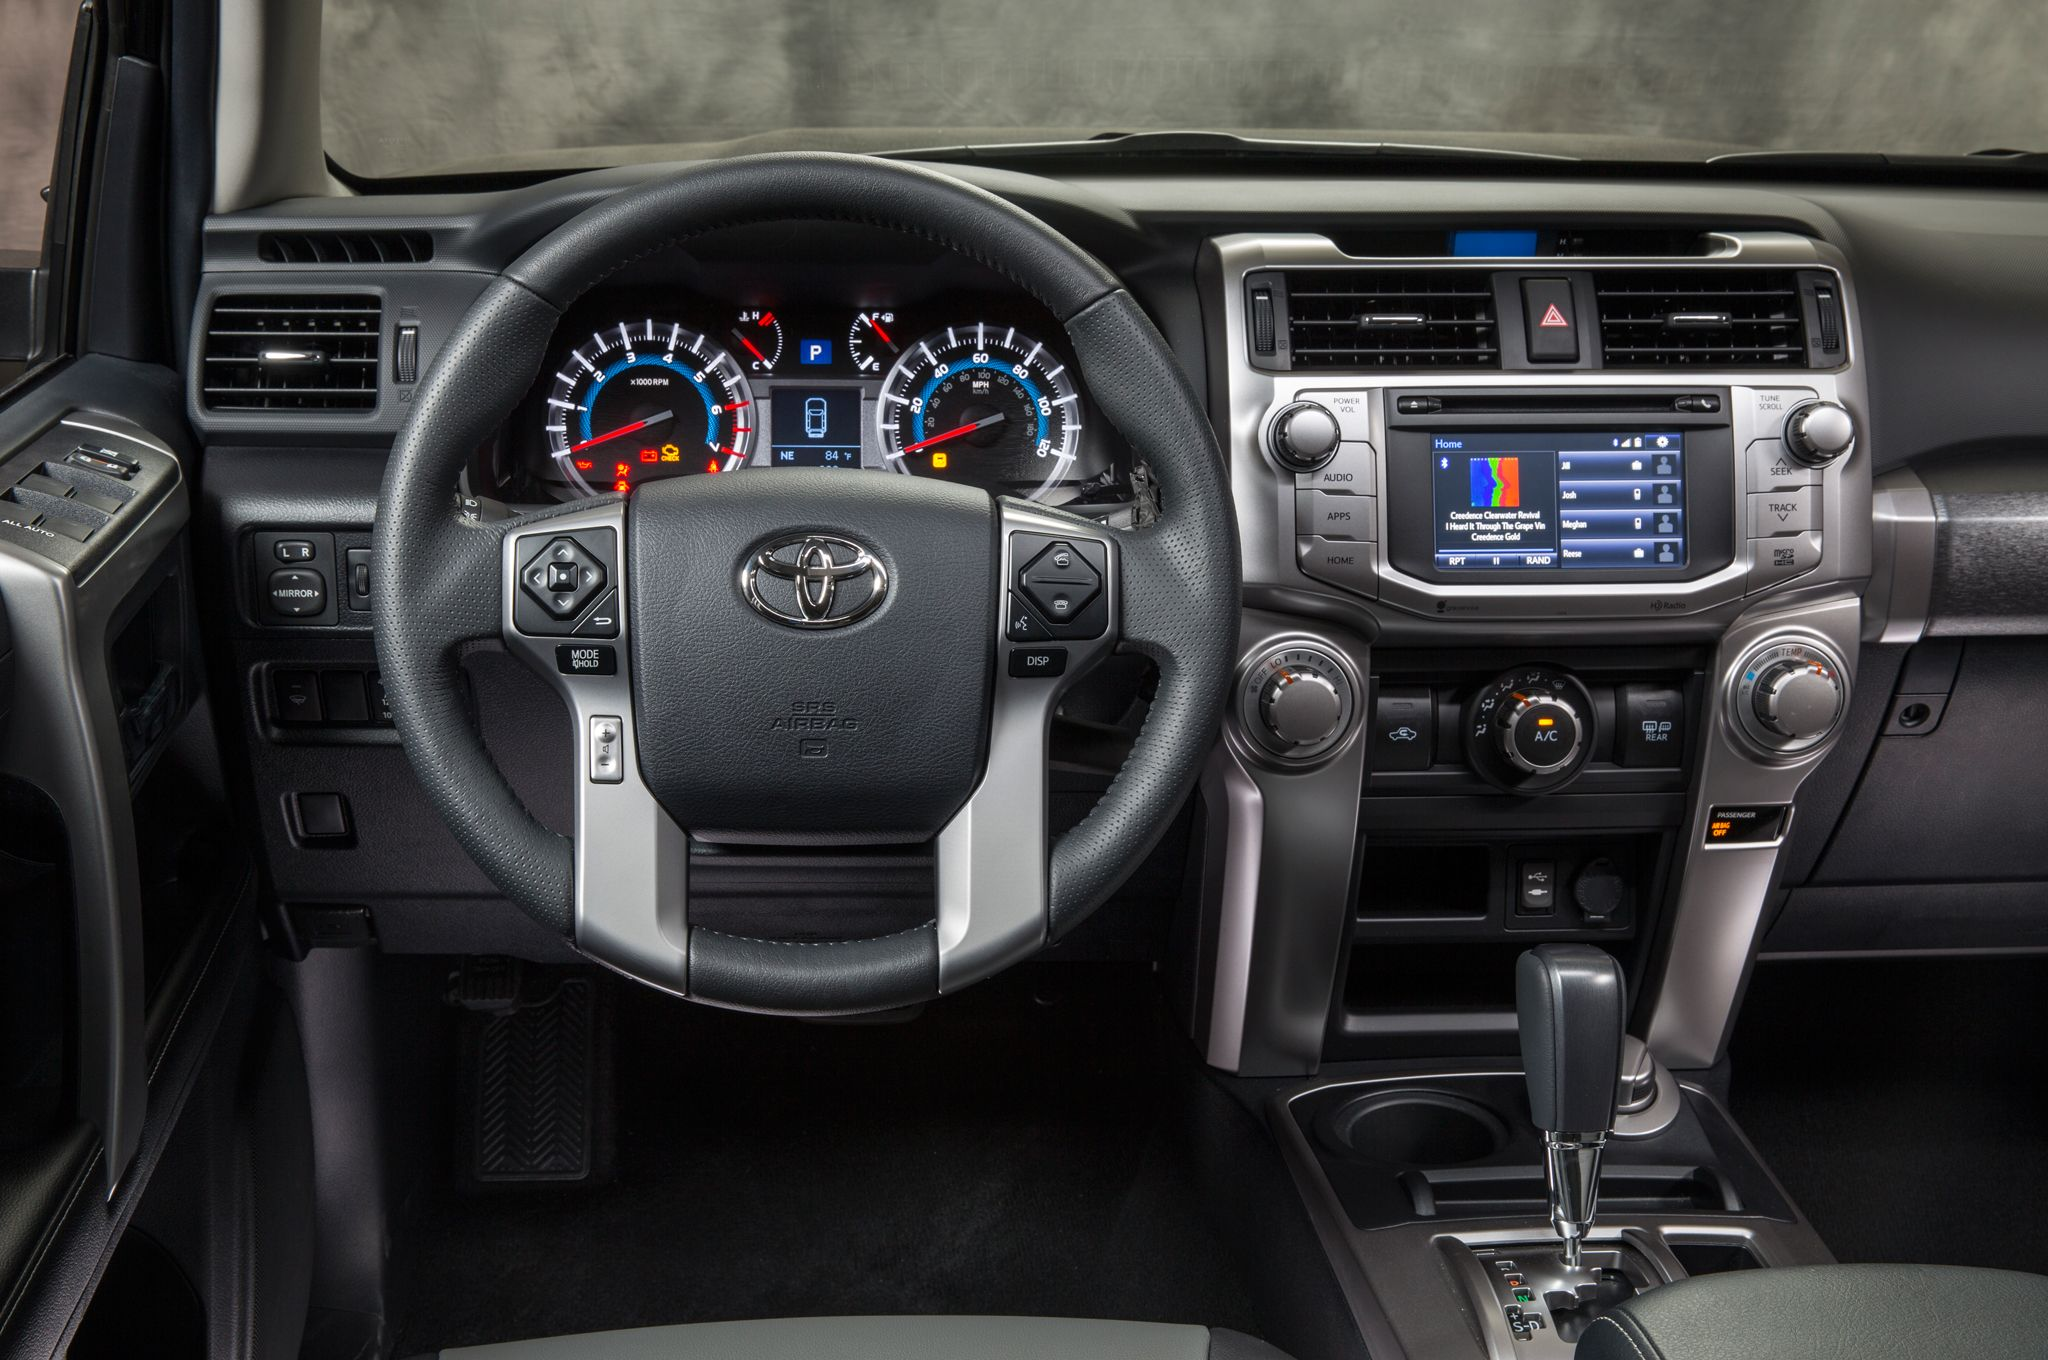 Toyota 4runner 2015 Grey Interior D 3 I Like This Car Is Hugeee Idk But It Looks Like An Airplane 3 Toyota 4runner Toyota 4runner Interior 4runner